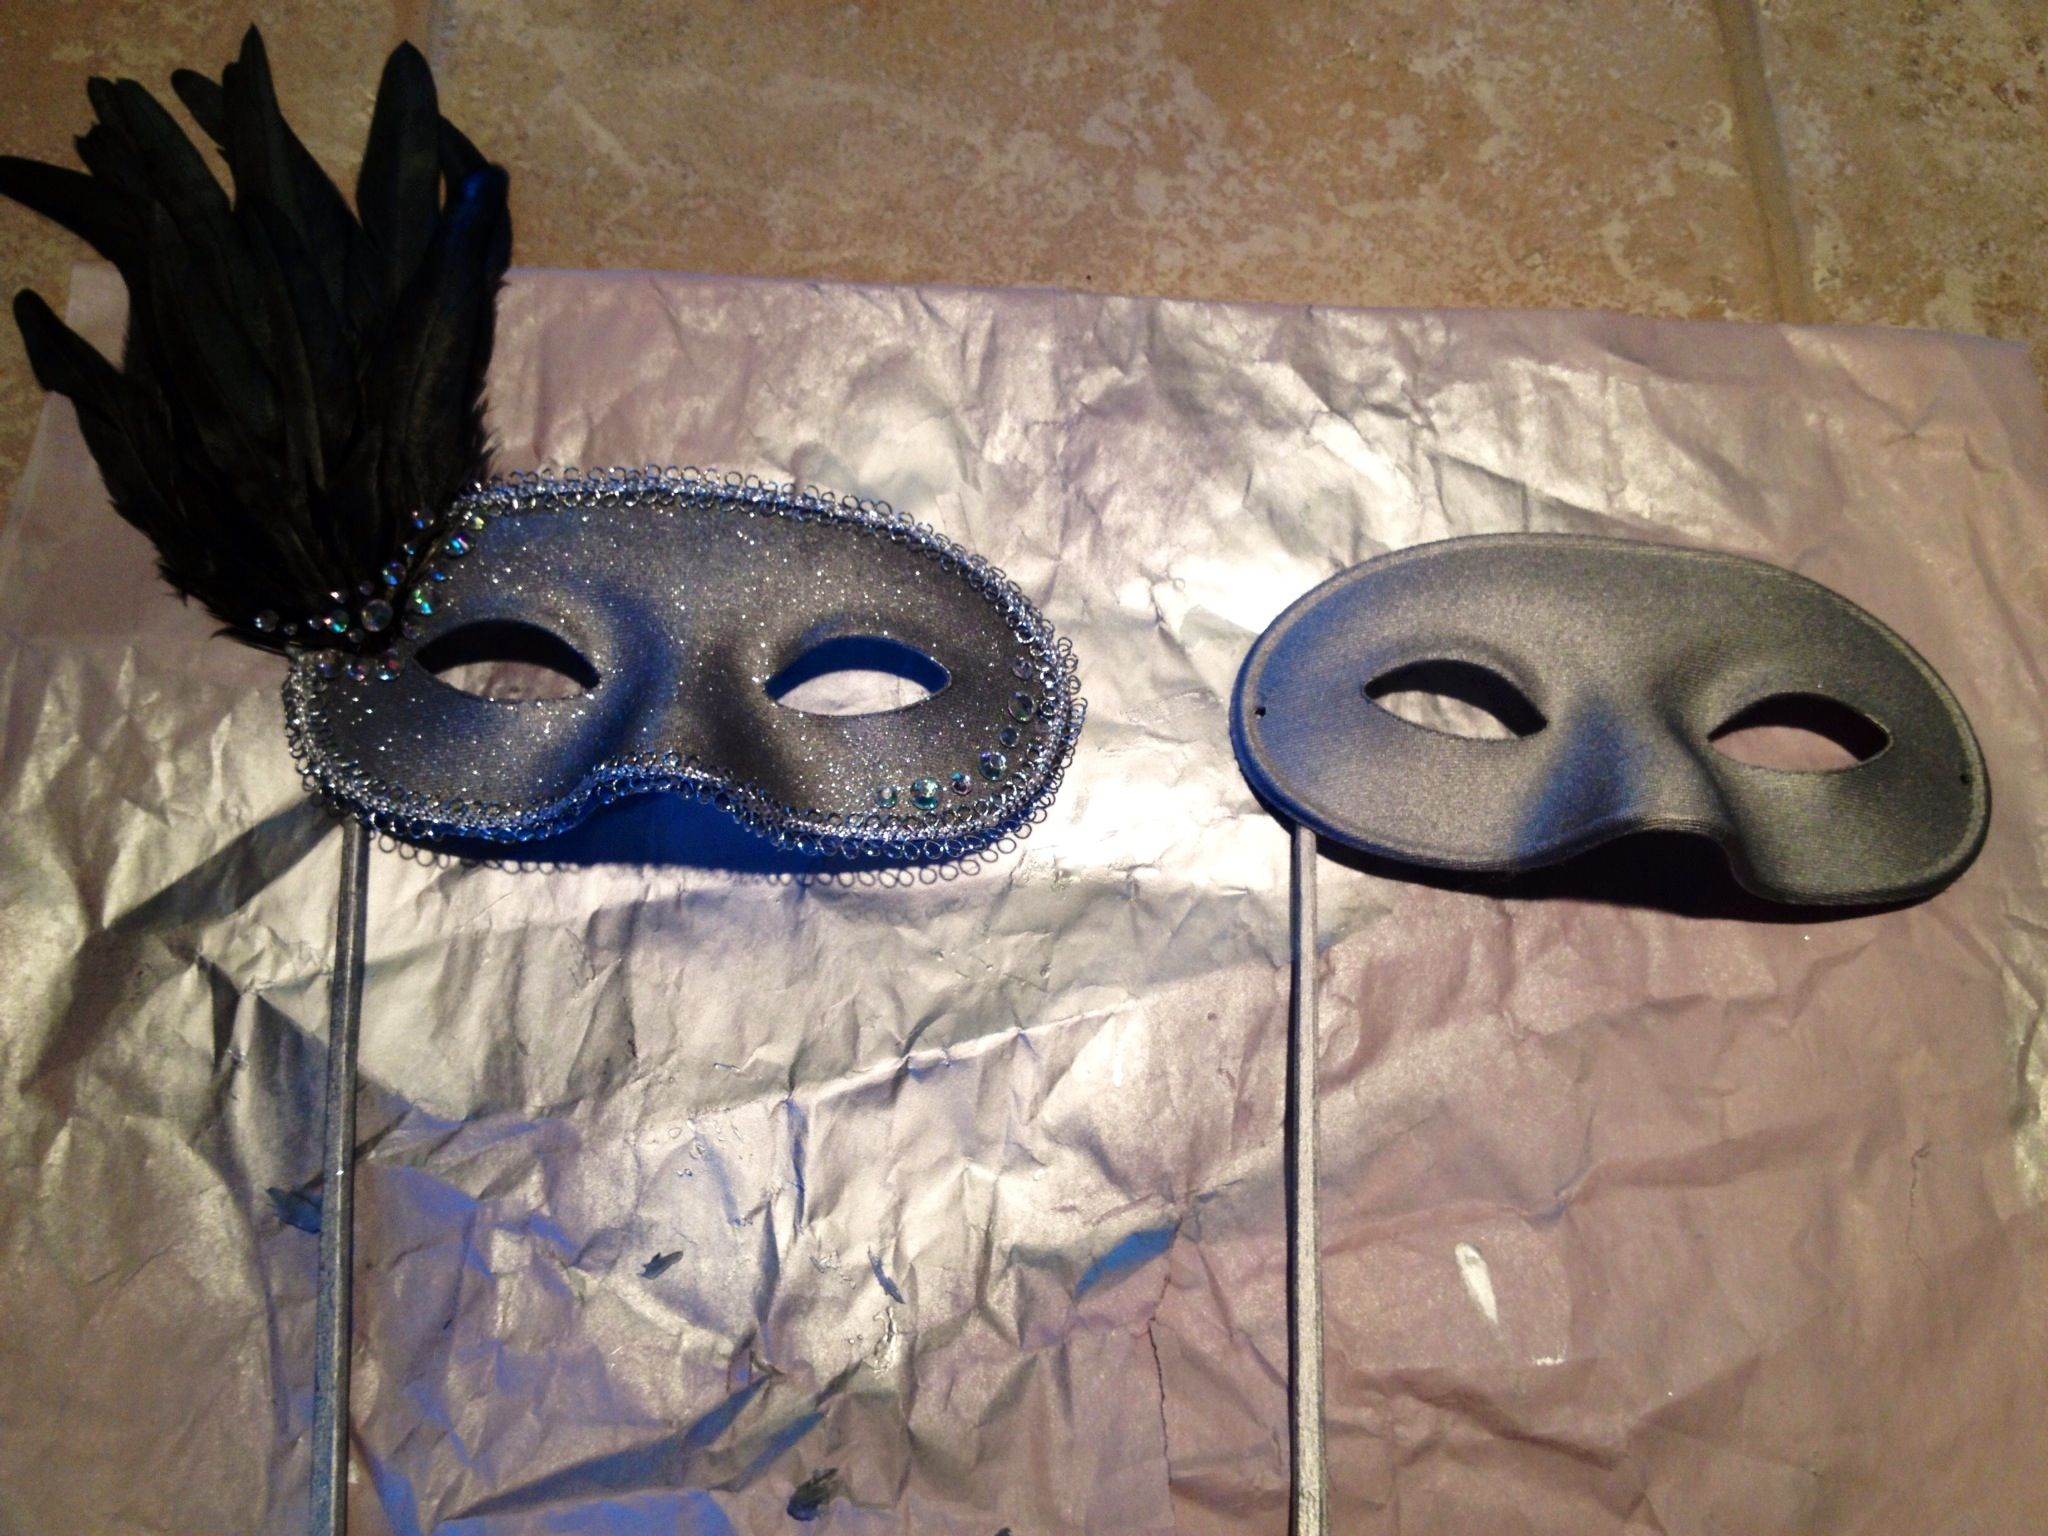 Half Masks To Decorate Custom Diy Masquerade Masks  My Style  Pinterest  Masquerade Masks Design Inspiration